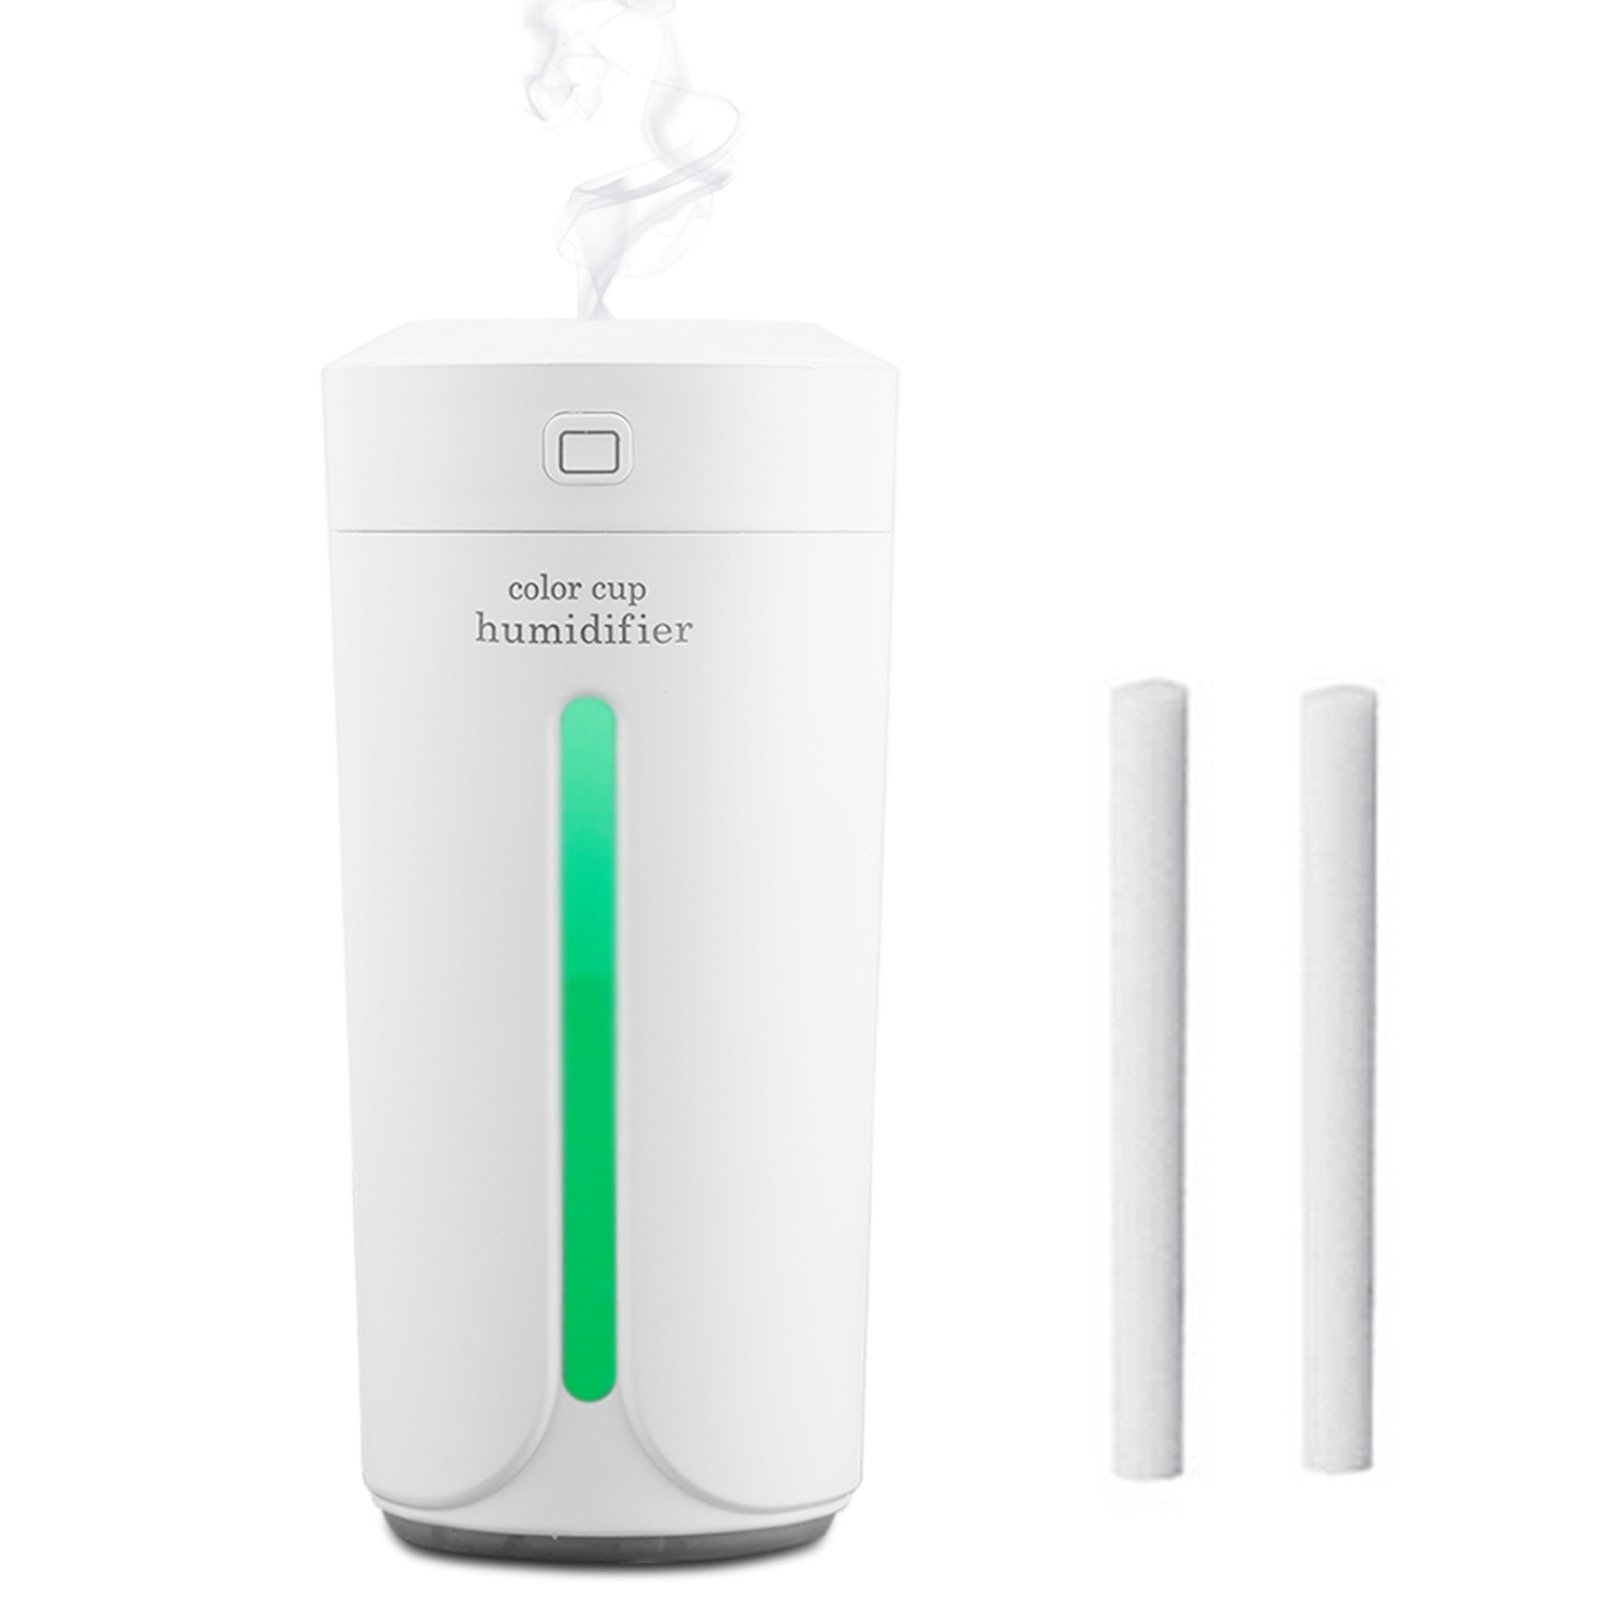 ONUEMP Cool Mist Humidifier, USB Desk Air Purifier Cup Humidifier Comes with 2 Filters Sponges, Personal Car Humidifier with 7 Color Night Lights for Pets, Smoke, Mold, Completely Mute